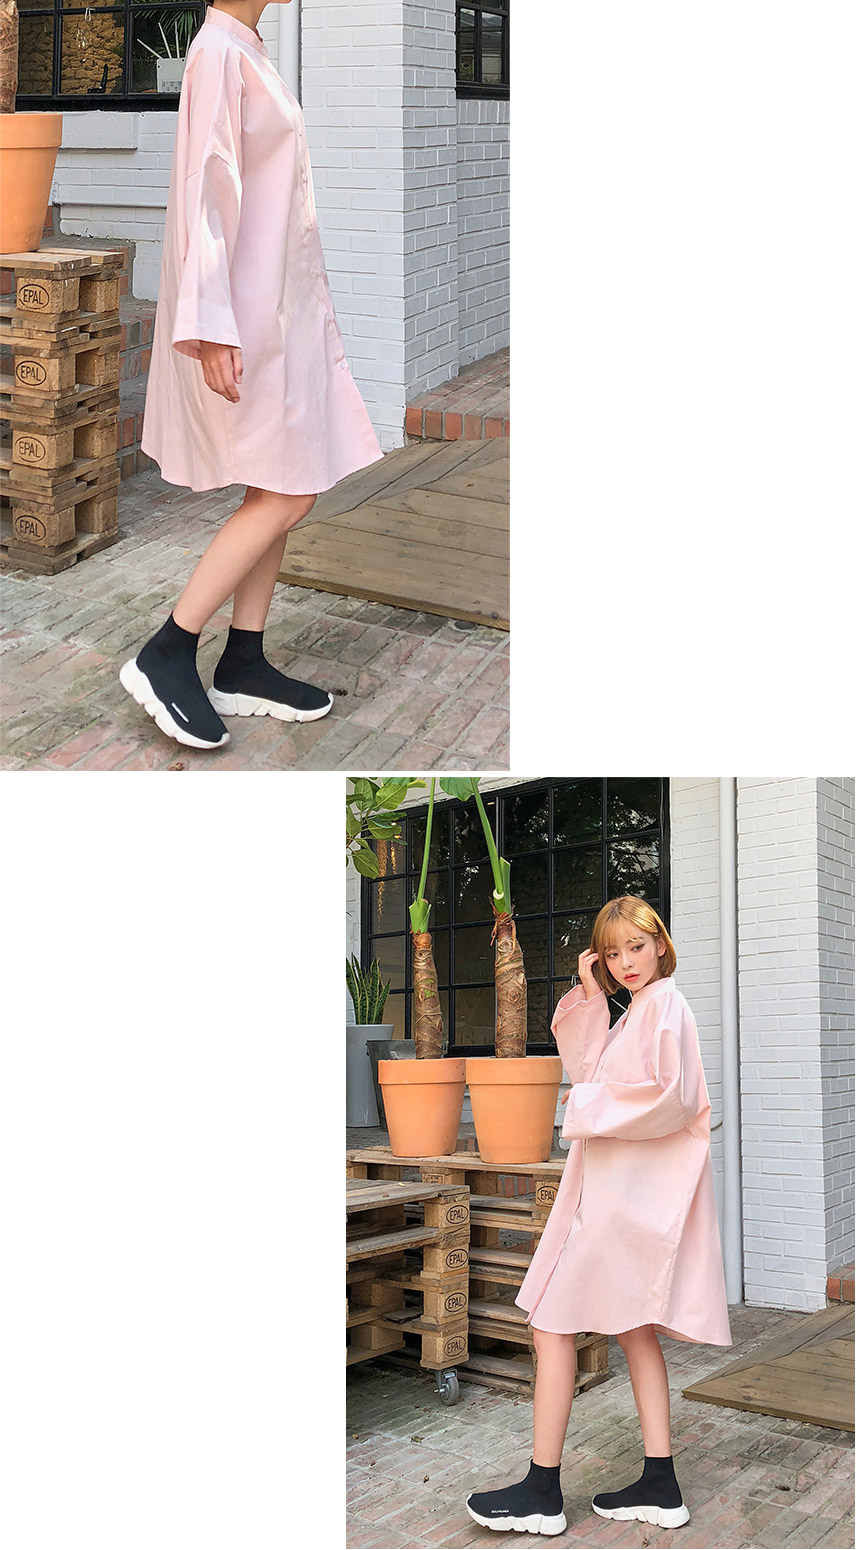 //cdn.nhanh.vn/cdn/store/29770/psCT/20181003/9325619/_CHUU_MADE__Cotton_Long_Shirt_(38).jpg